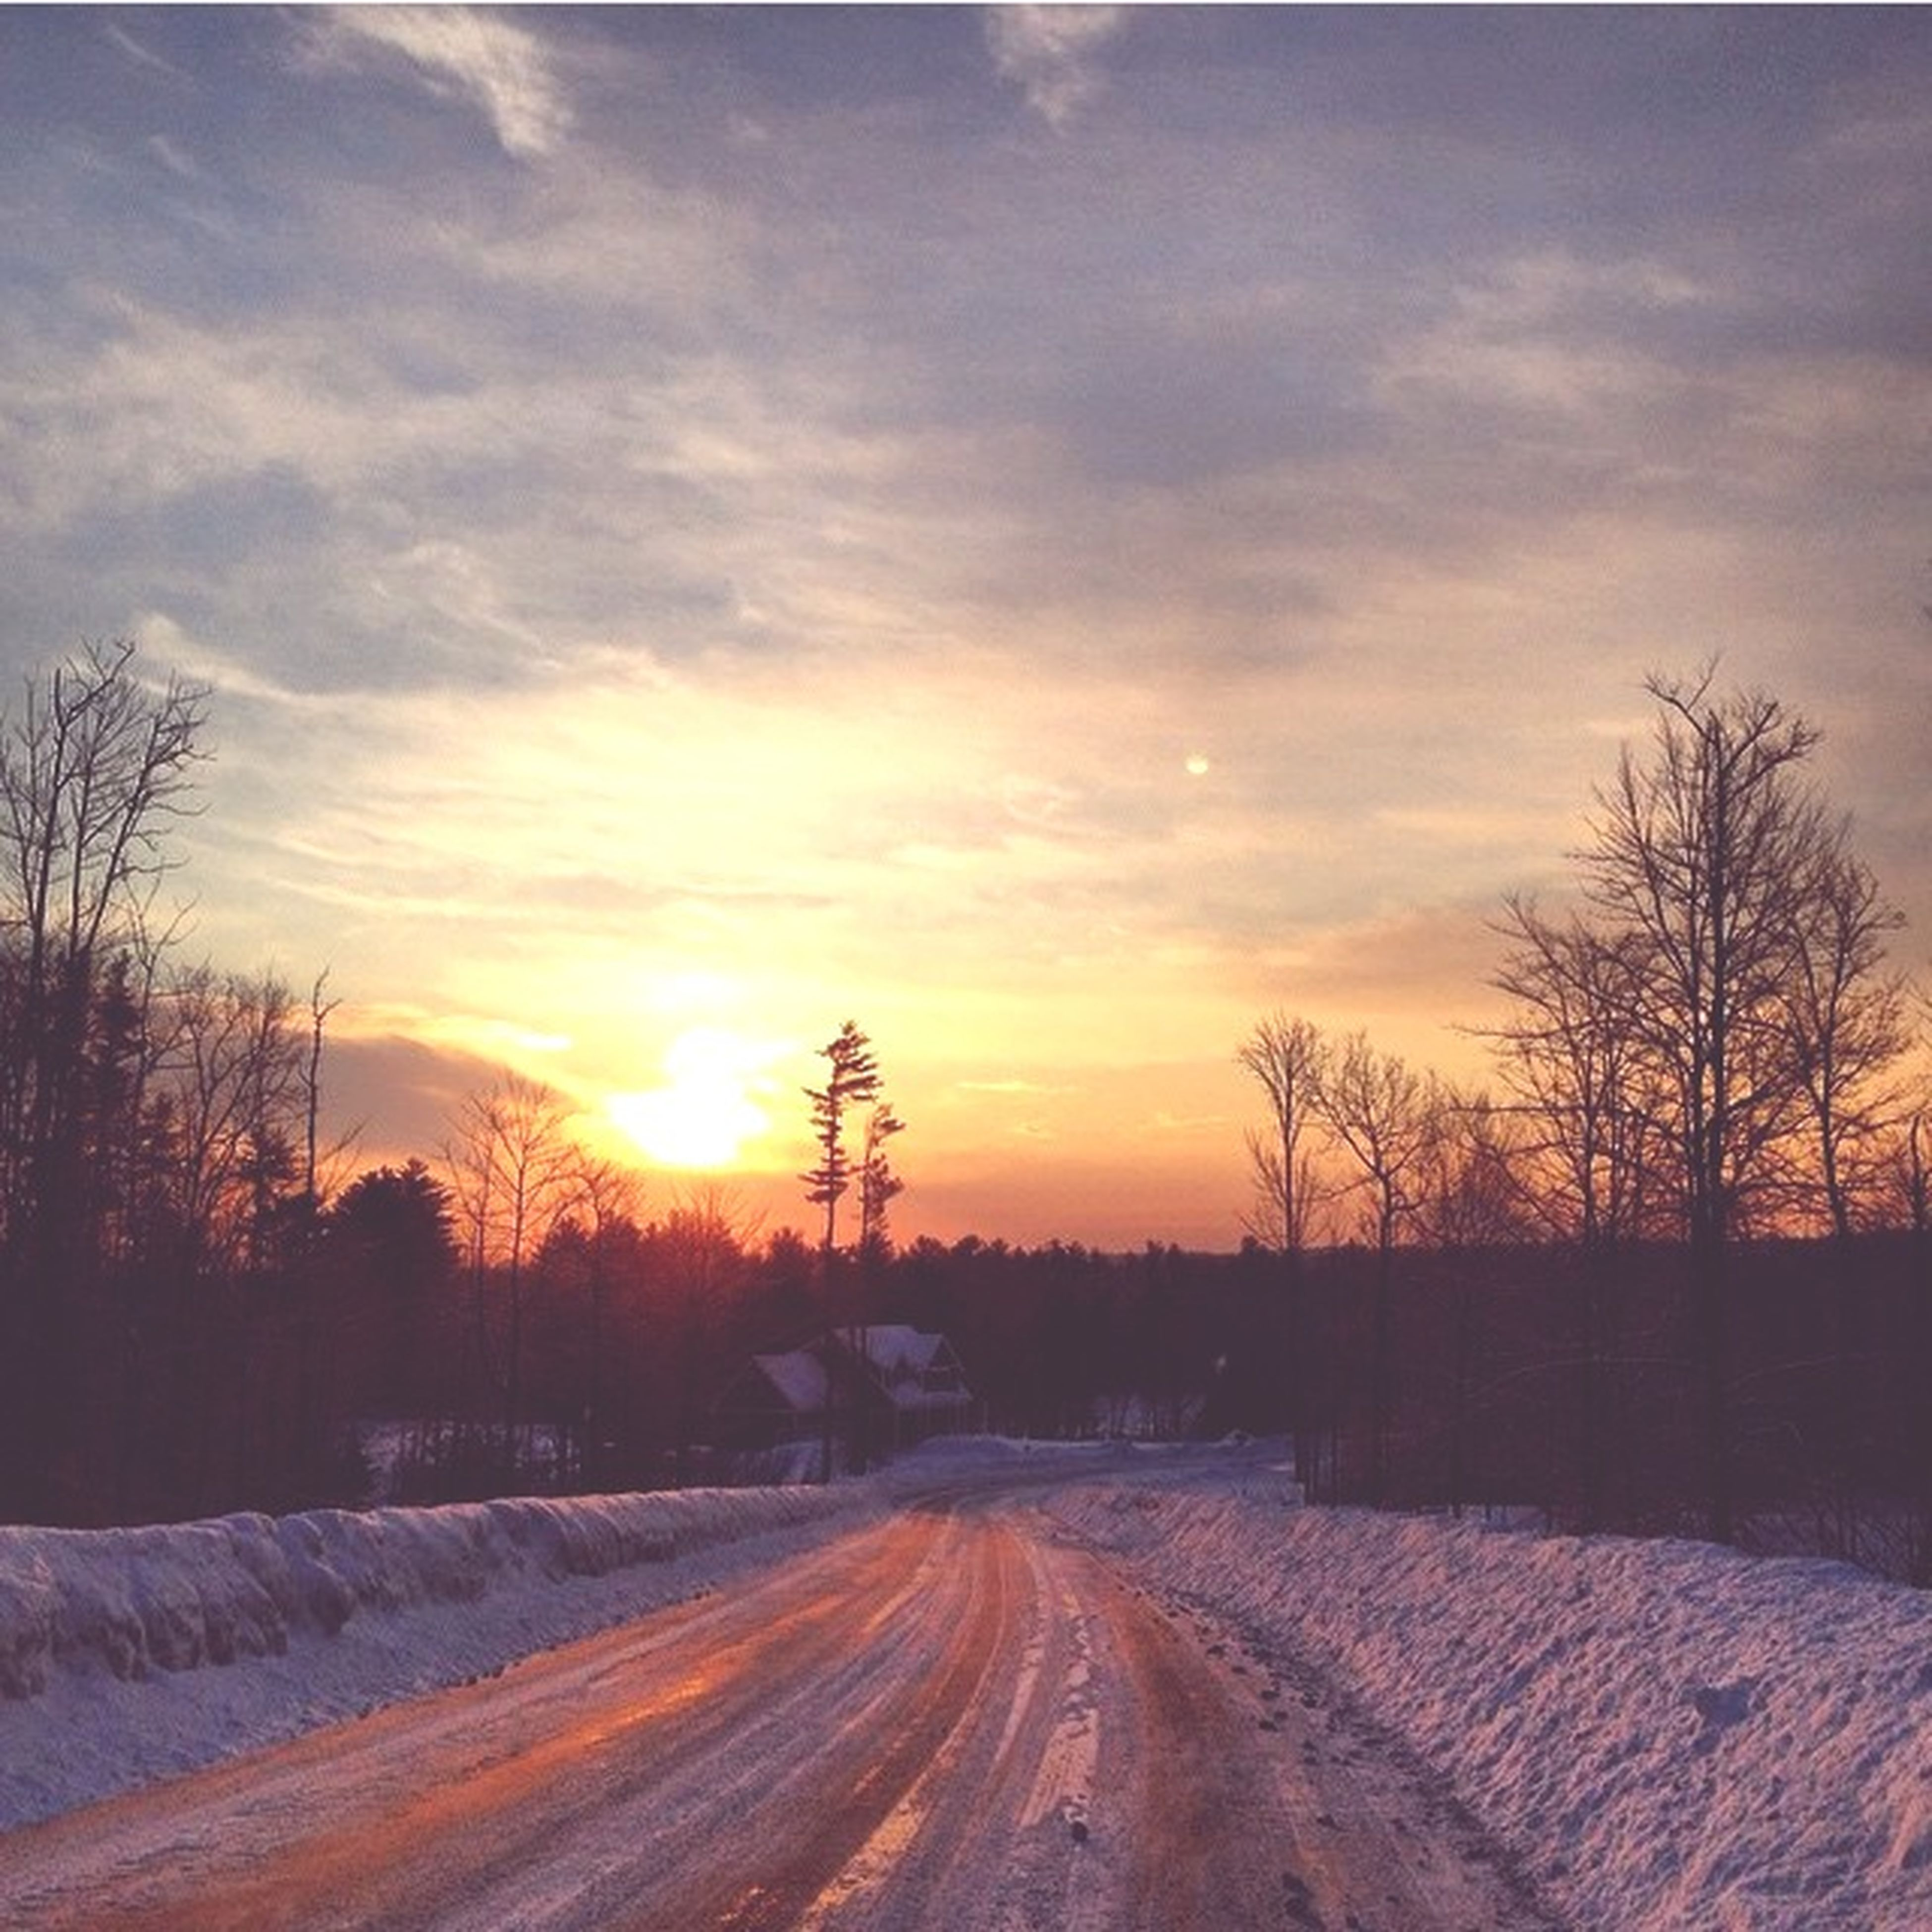 snow, winter, cold temperature, sunset, bare tree, sky, road, tree, the way forward, season, tranquil scene, tranquility, landscape, orange color, covering, beauty in nature, nature, scenics, weather, cloud - sky